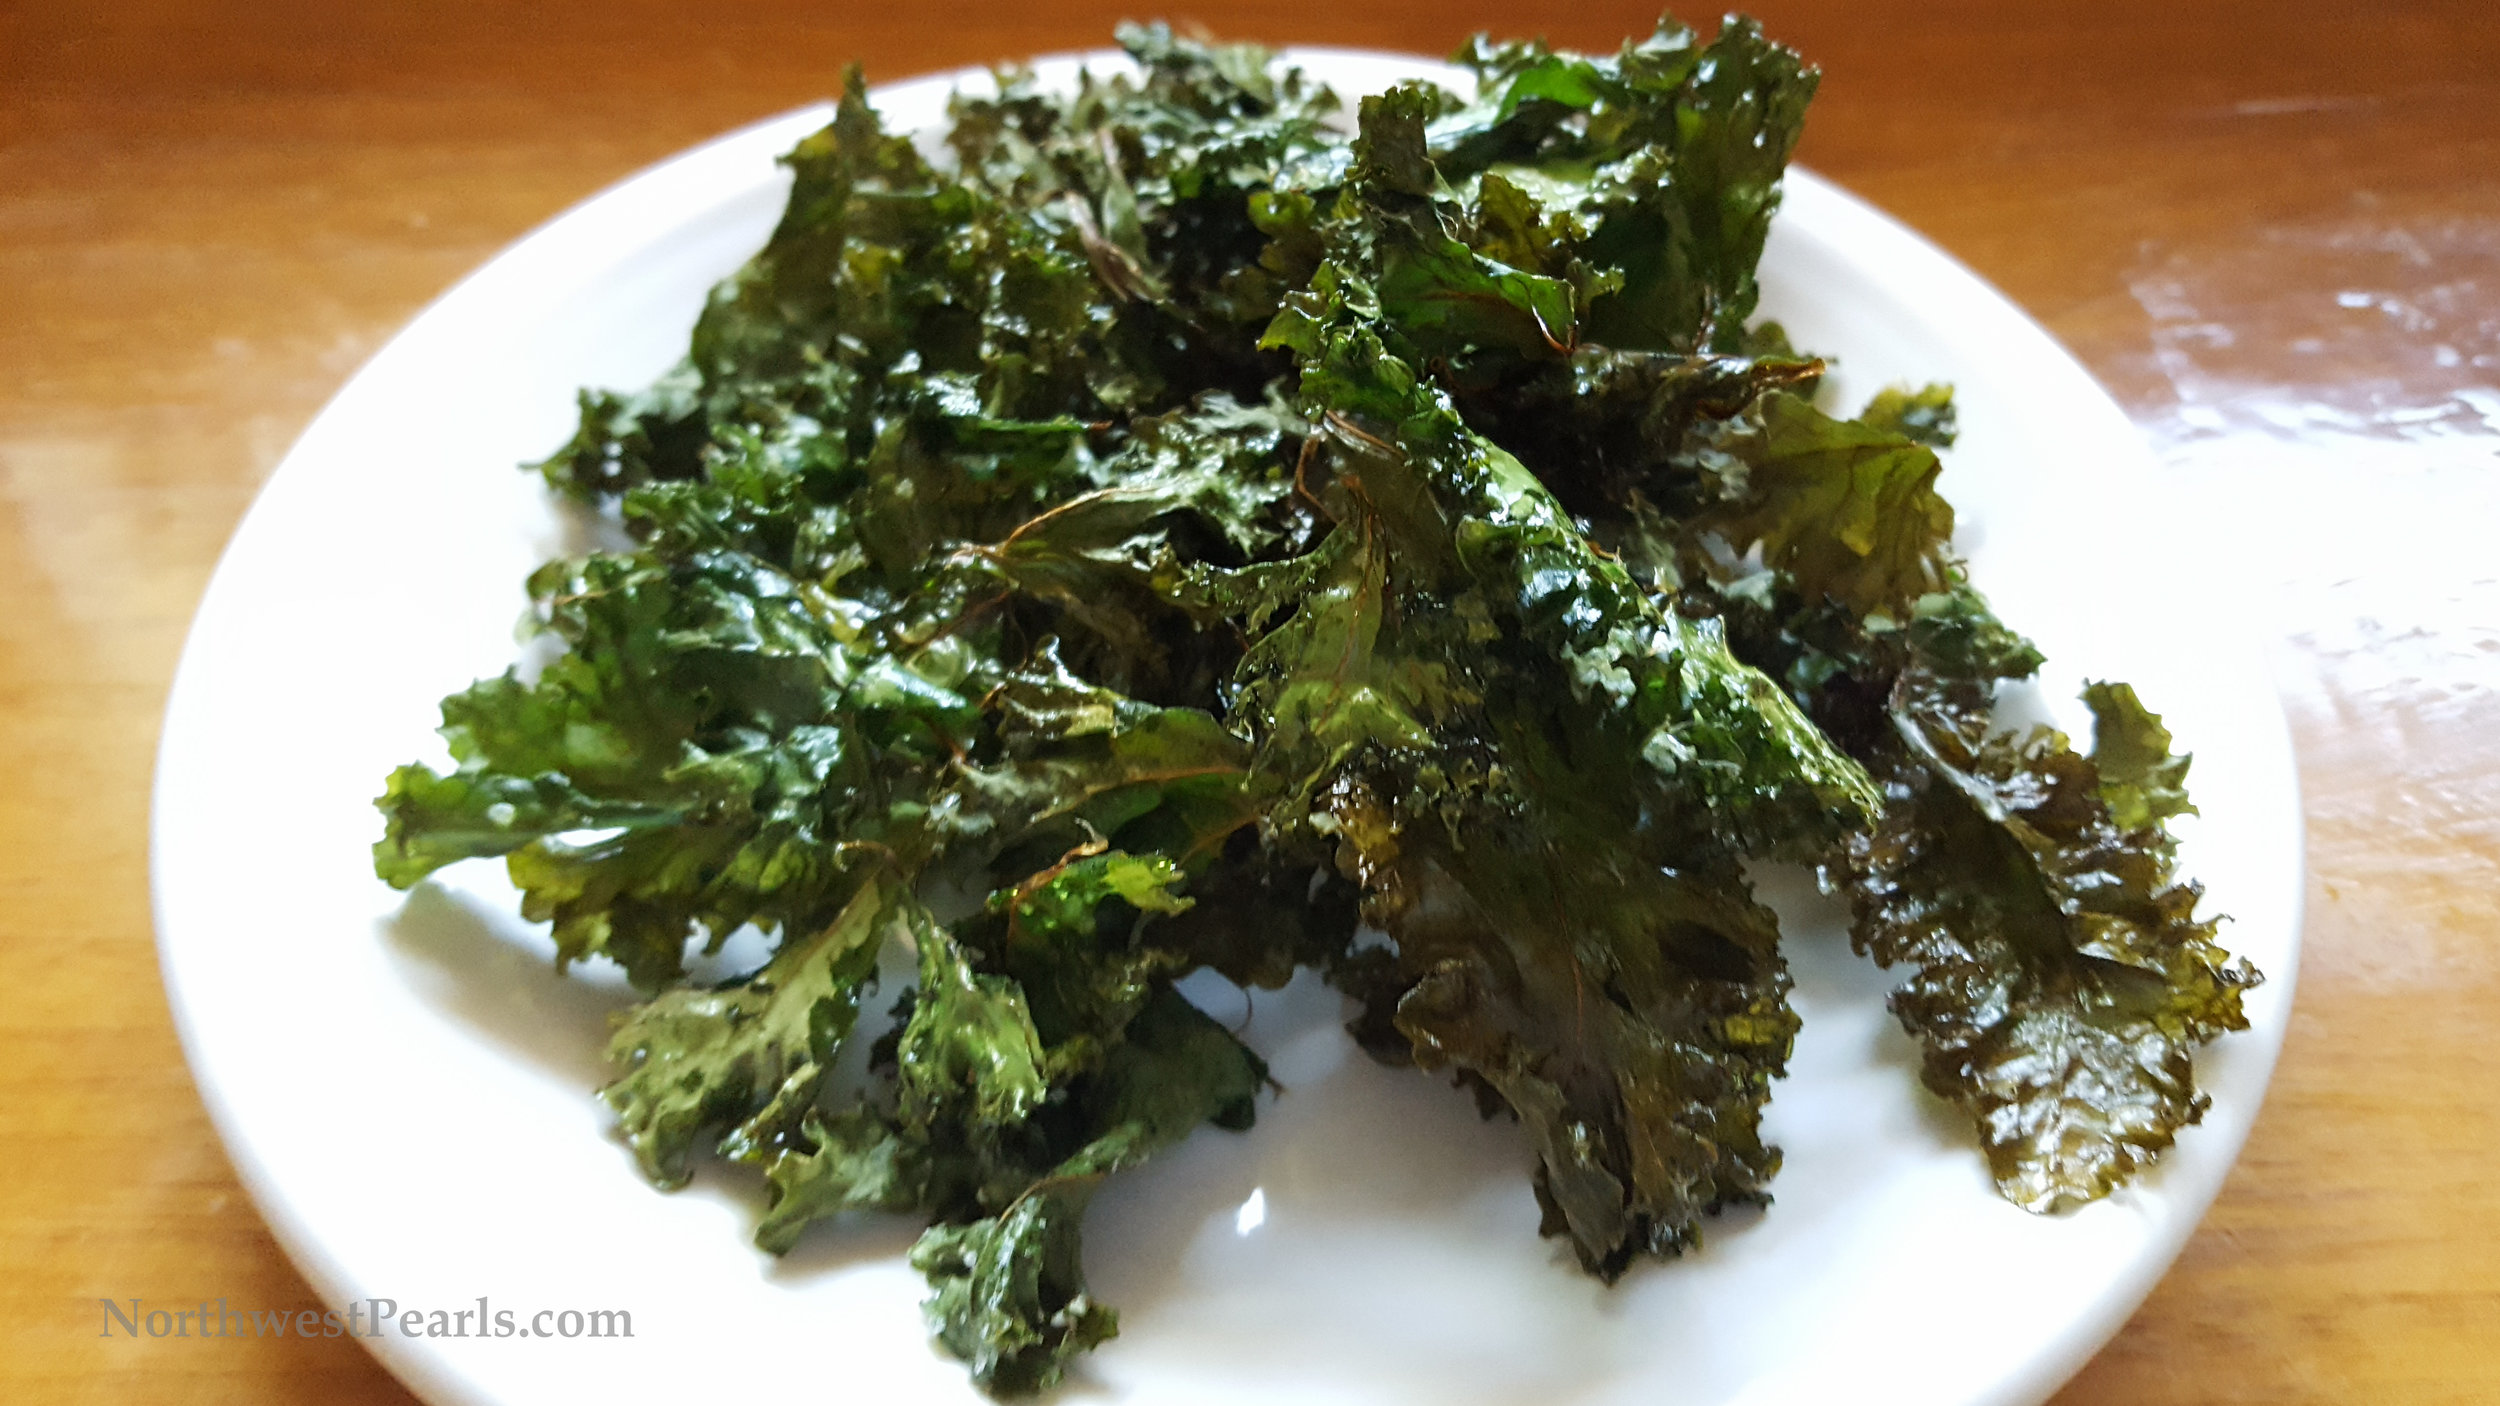 Northwest Pearls: Baked Kale Chips